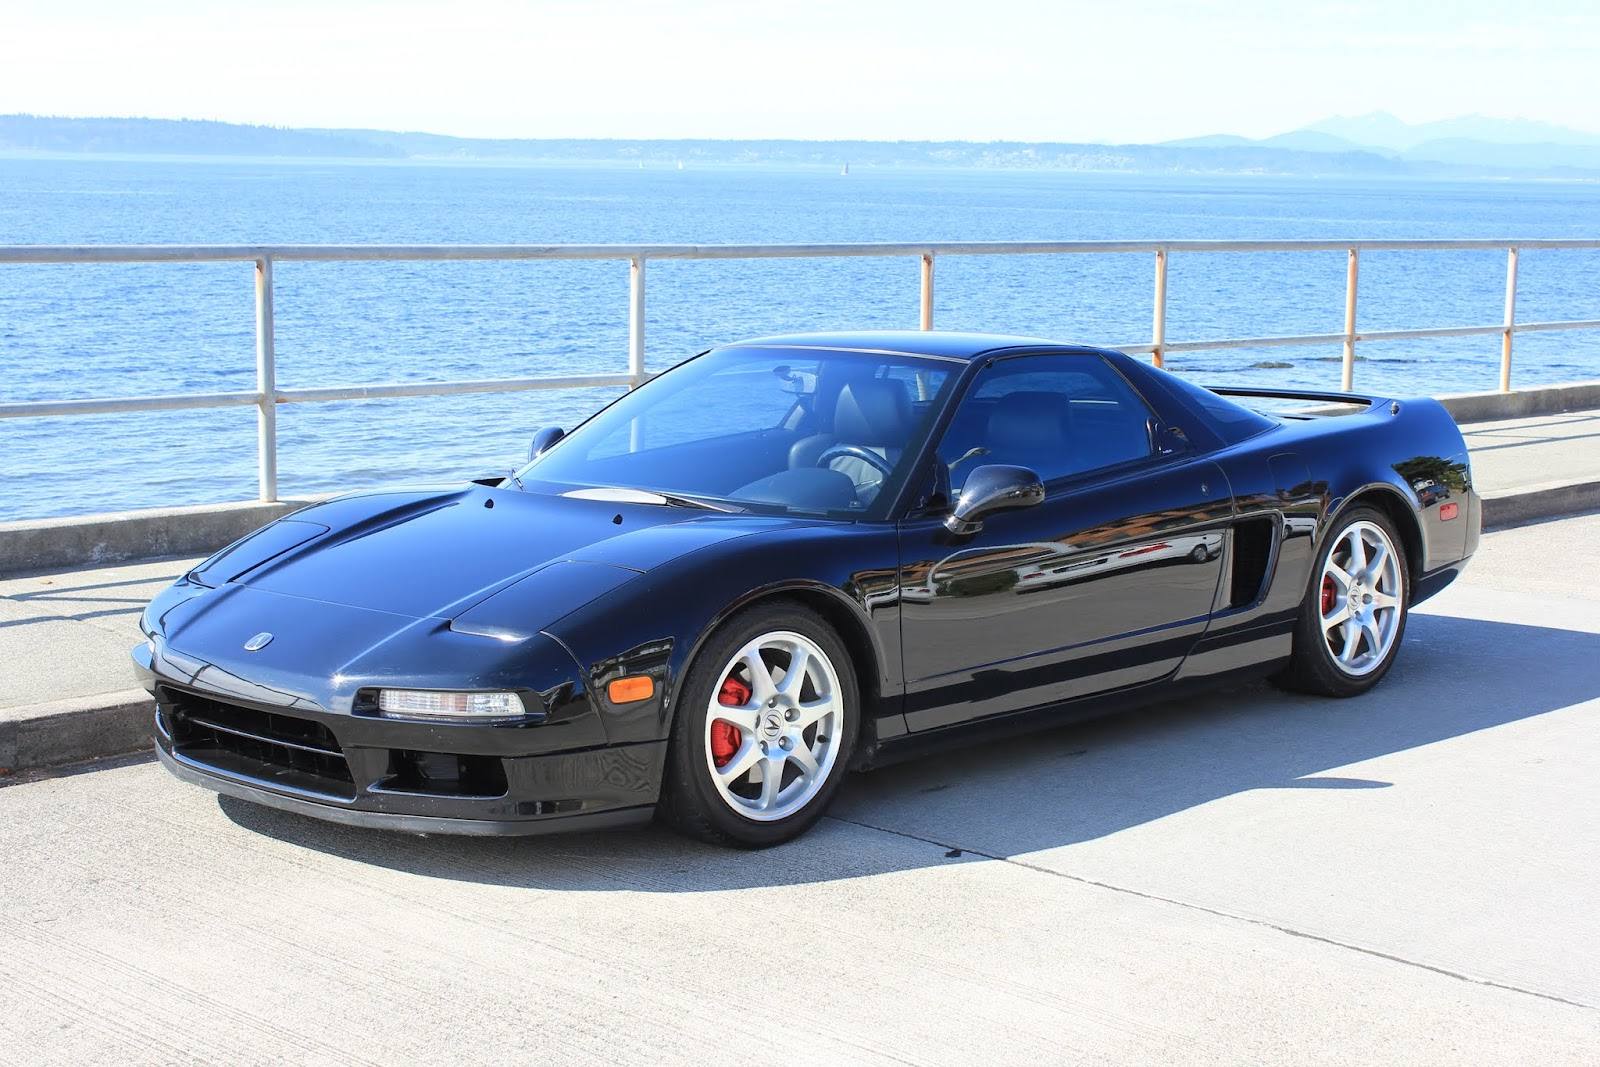 acura nsx 1990 2005 photo gallery images wallpaper custom pics. Black Bedroom Furniture Sets. Home Design Ideas